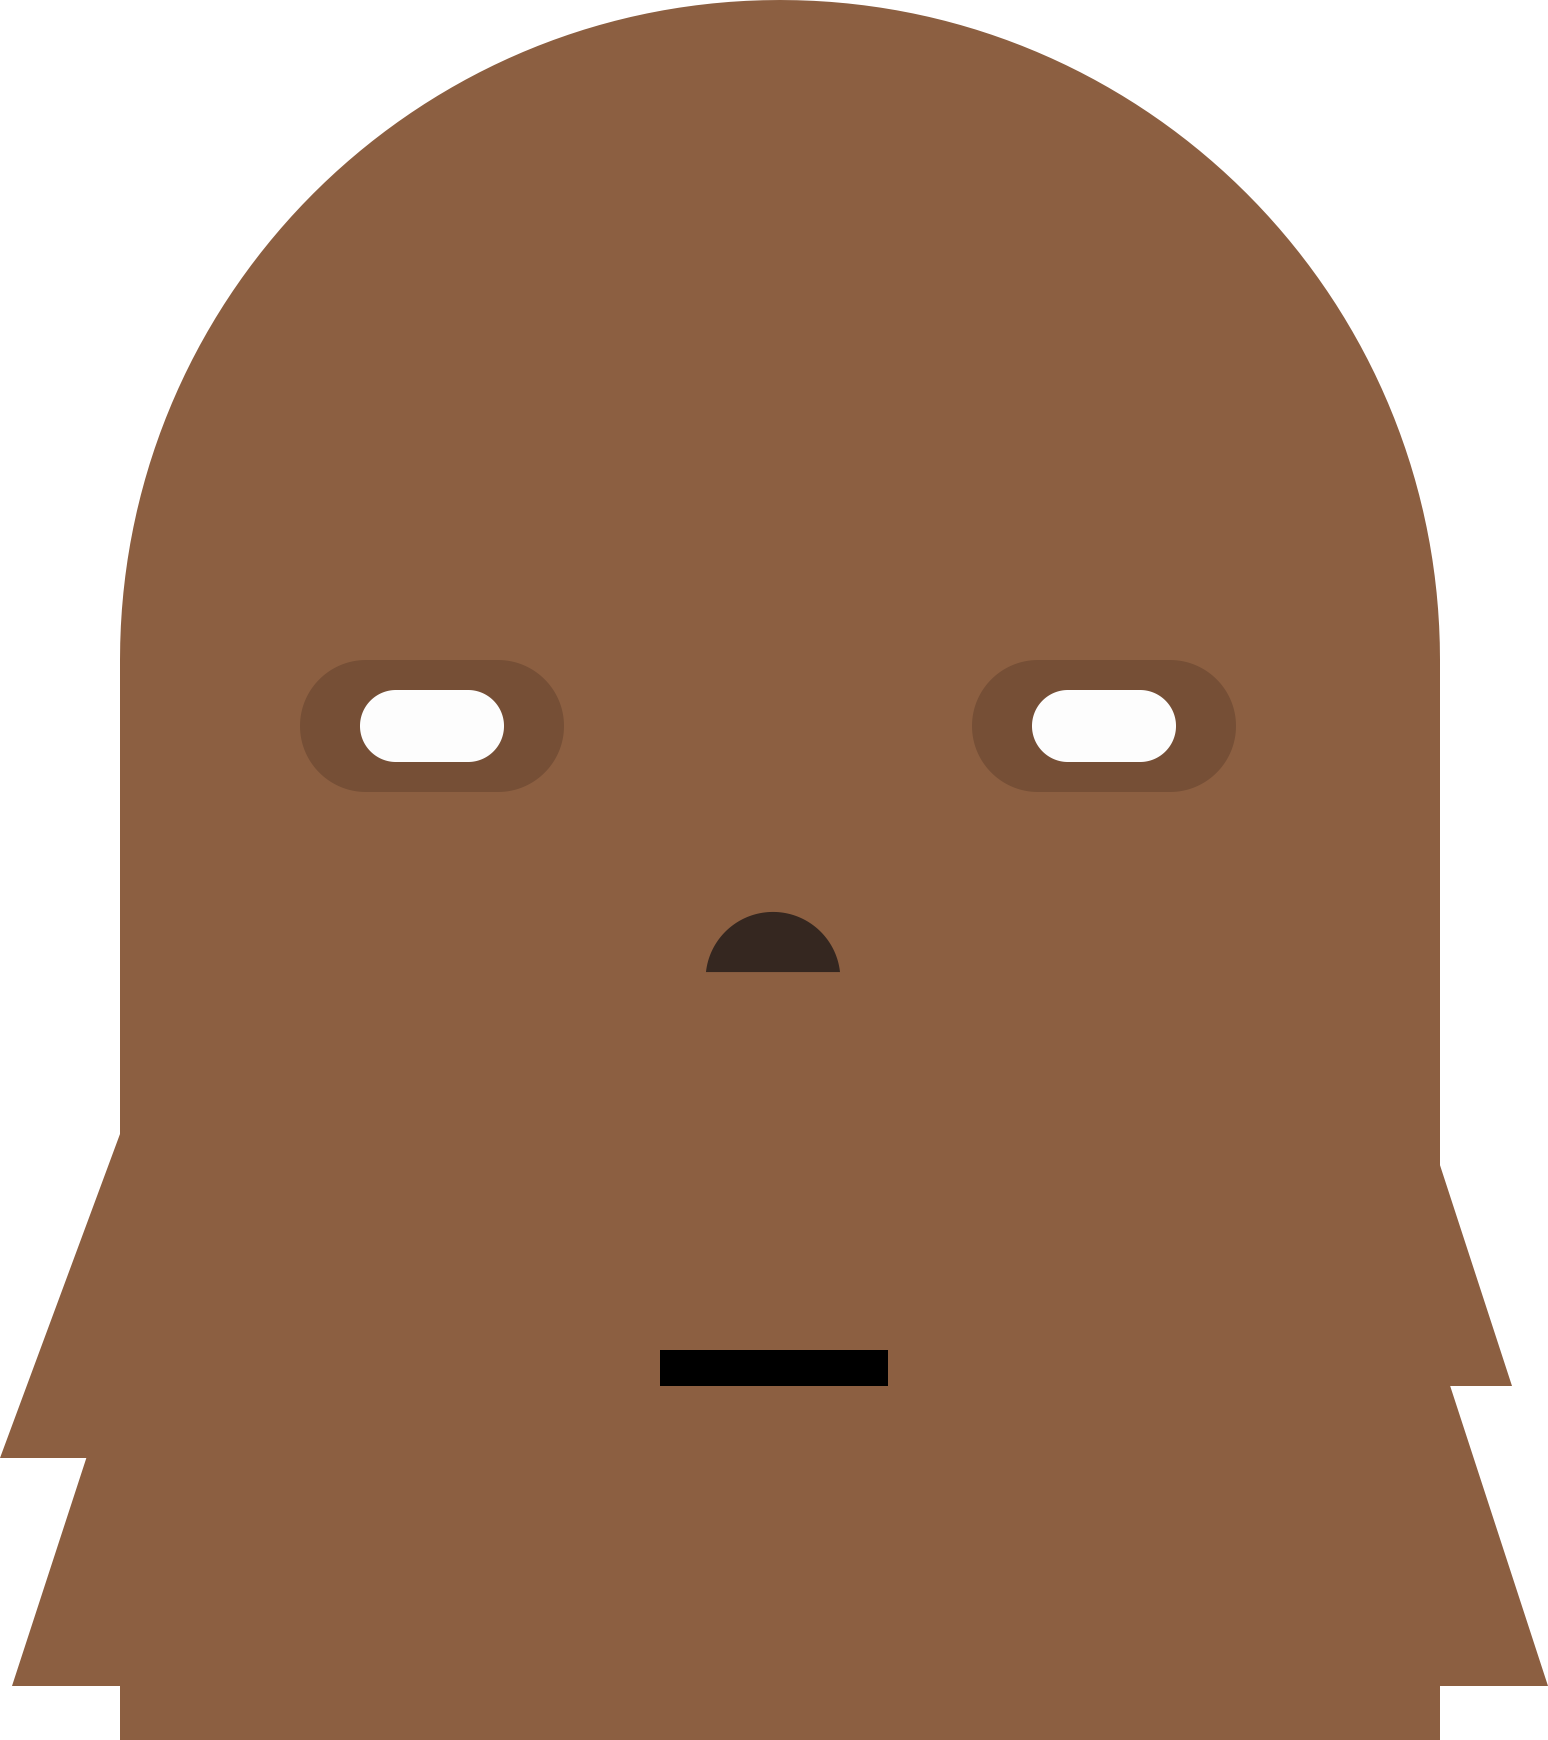 graphic freeuse stock Monster head big image. Chewbacca clipart cute.